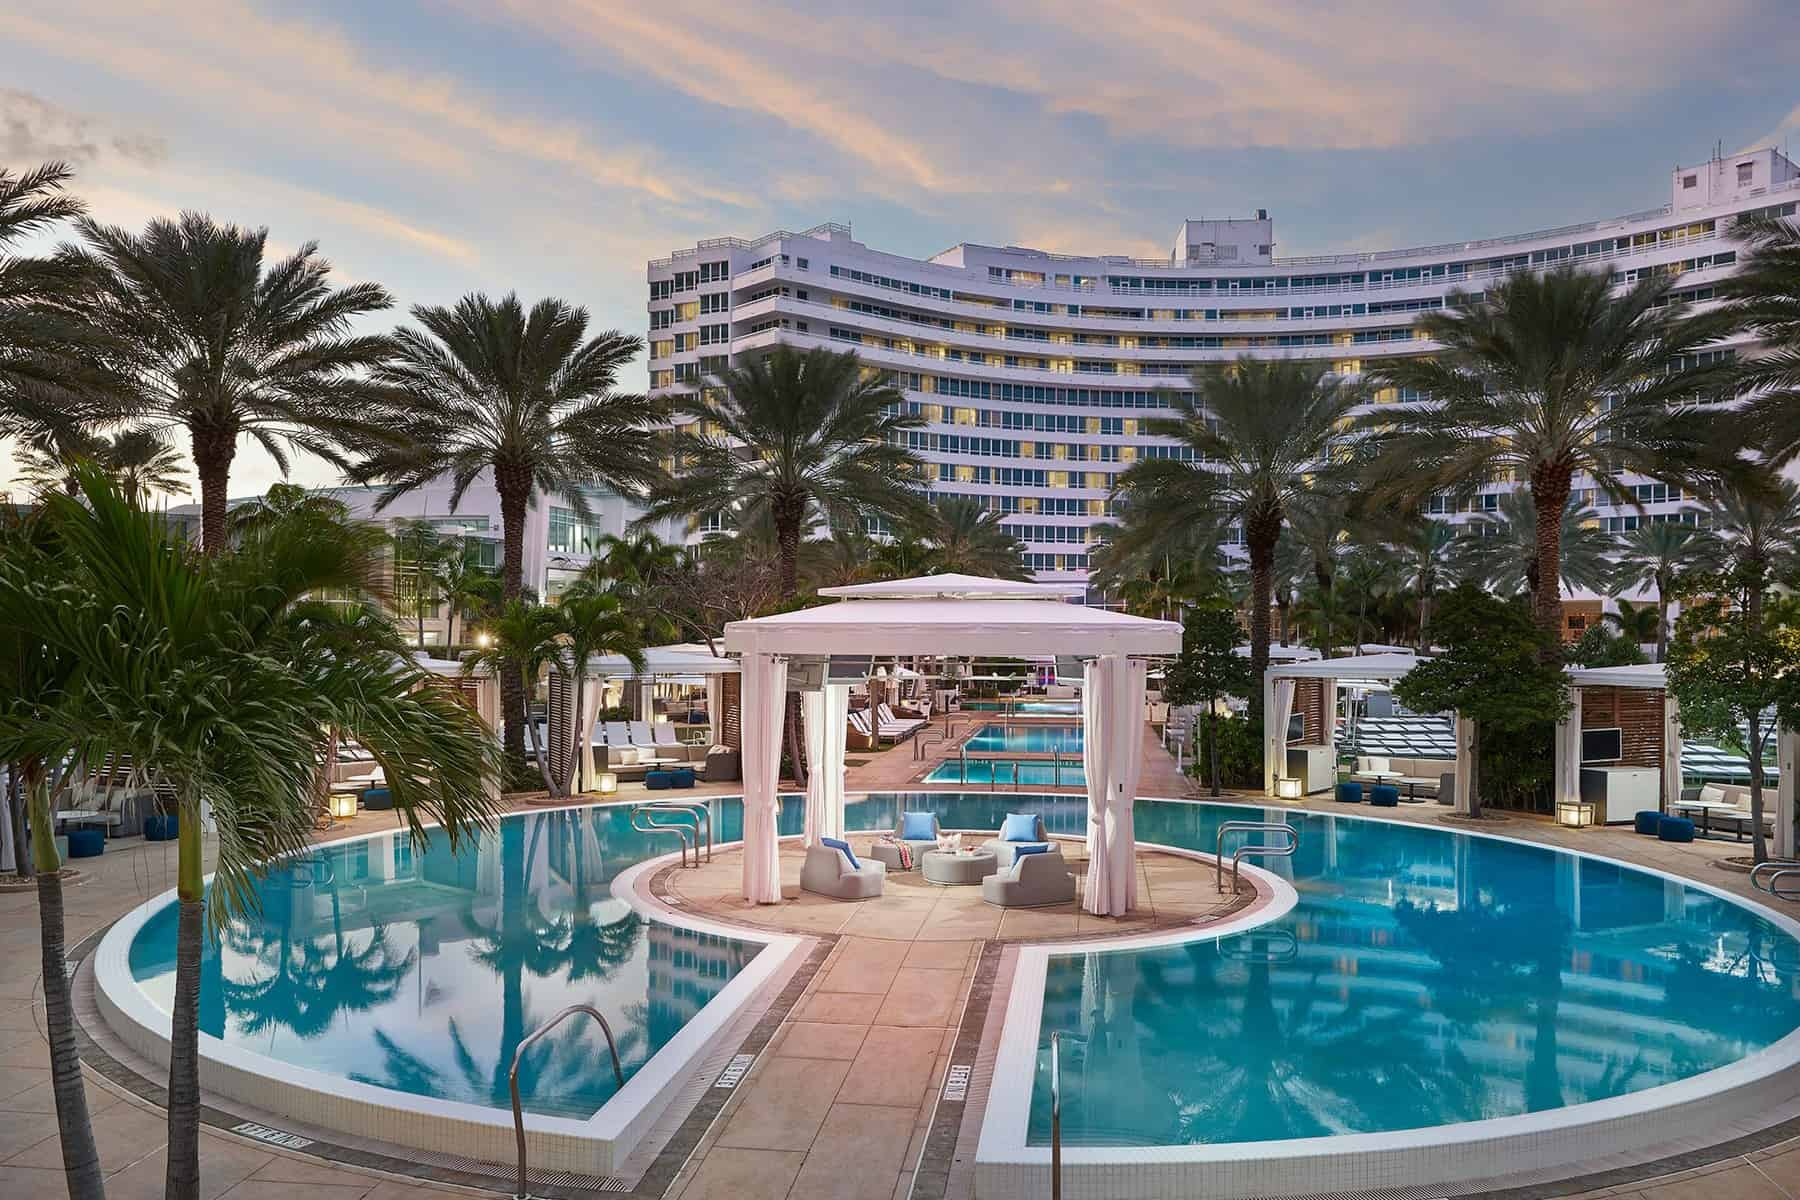 the resort pool at the Fontainebleau